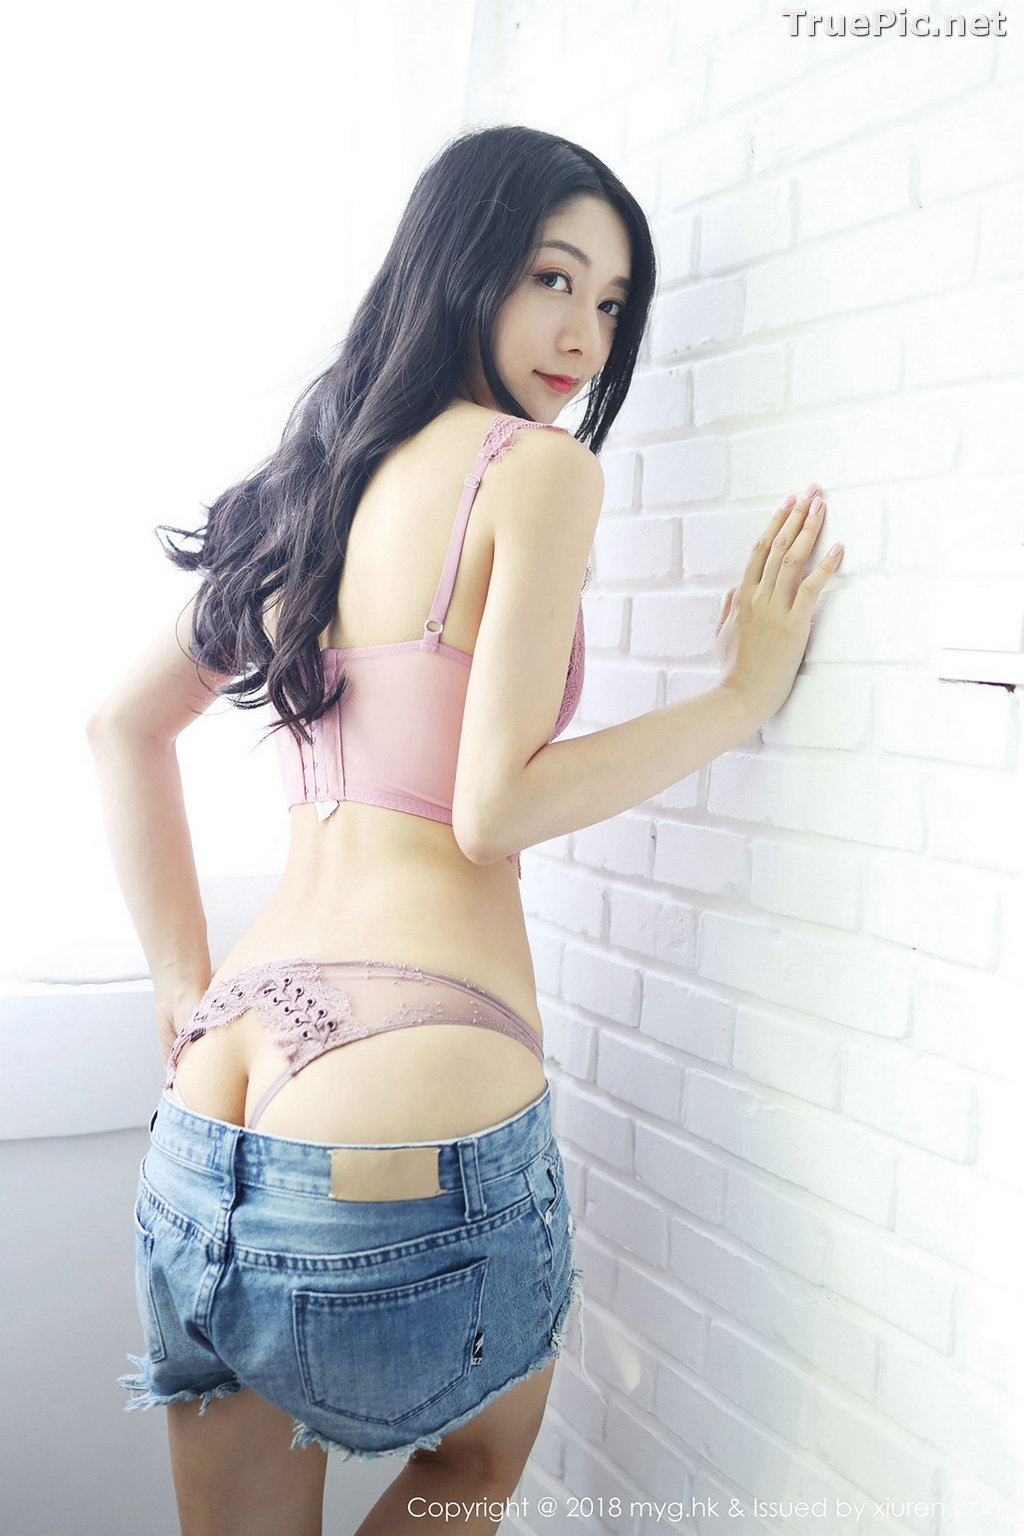 Image MyGirl Vol.322 - Chinese Model - Xiao Reba (Angela小热巴) - Croptop and Jean Short Pants - TruePic.net - Picture-26